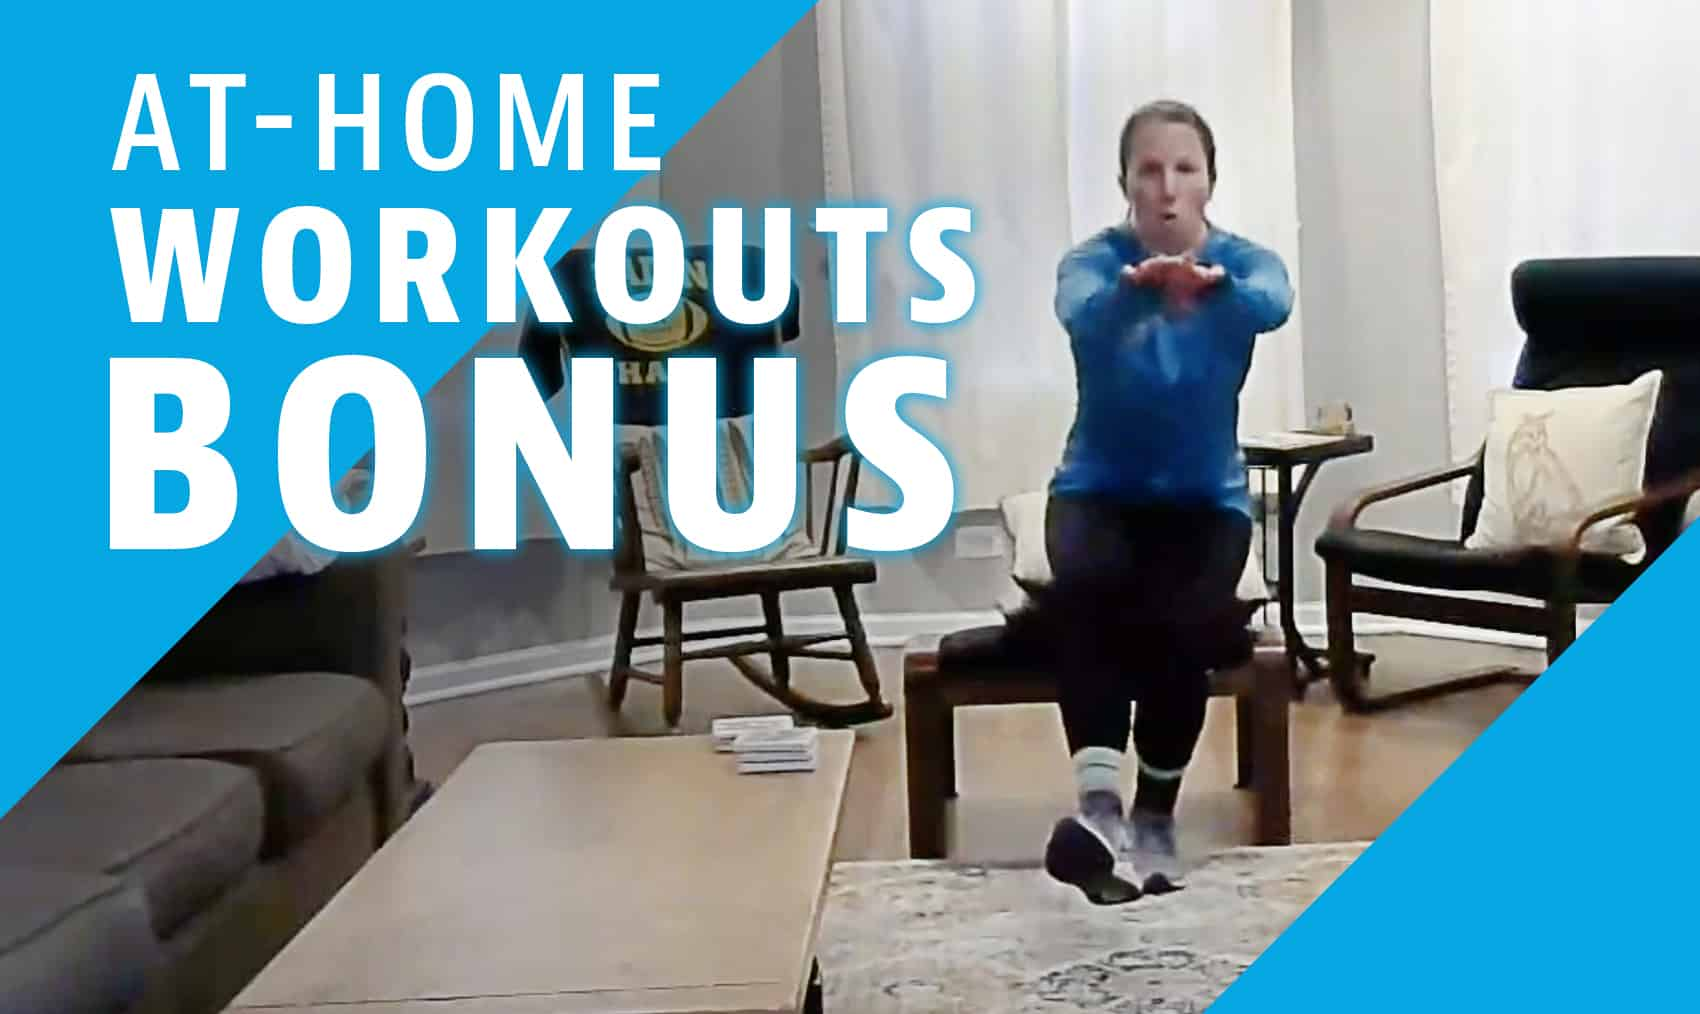 at-home workout bonus